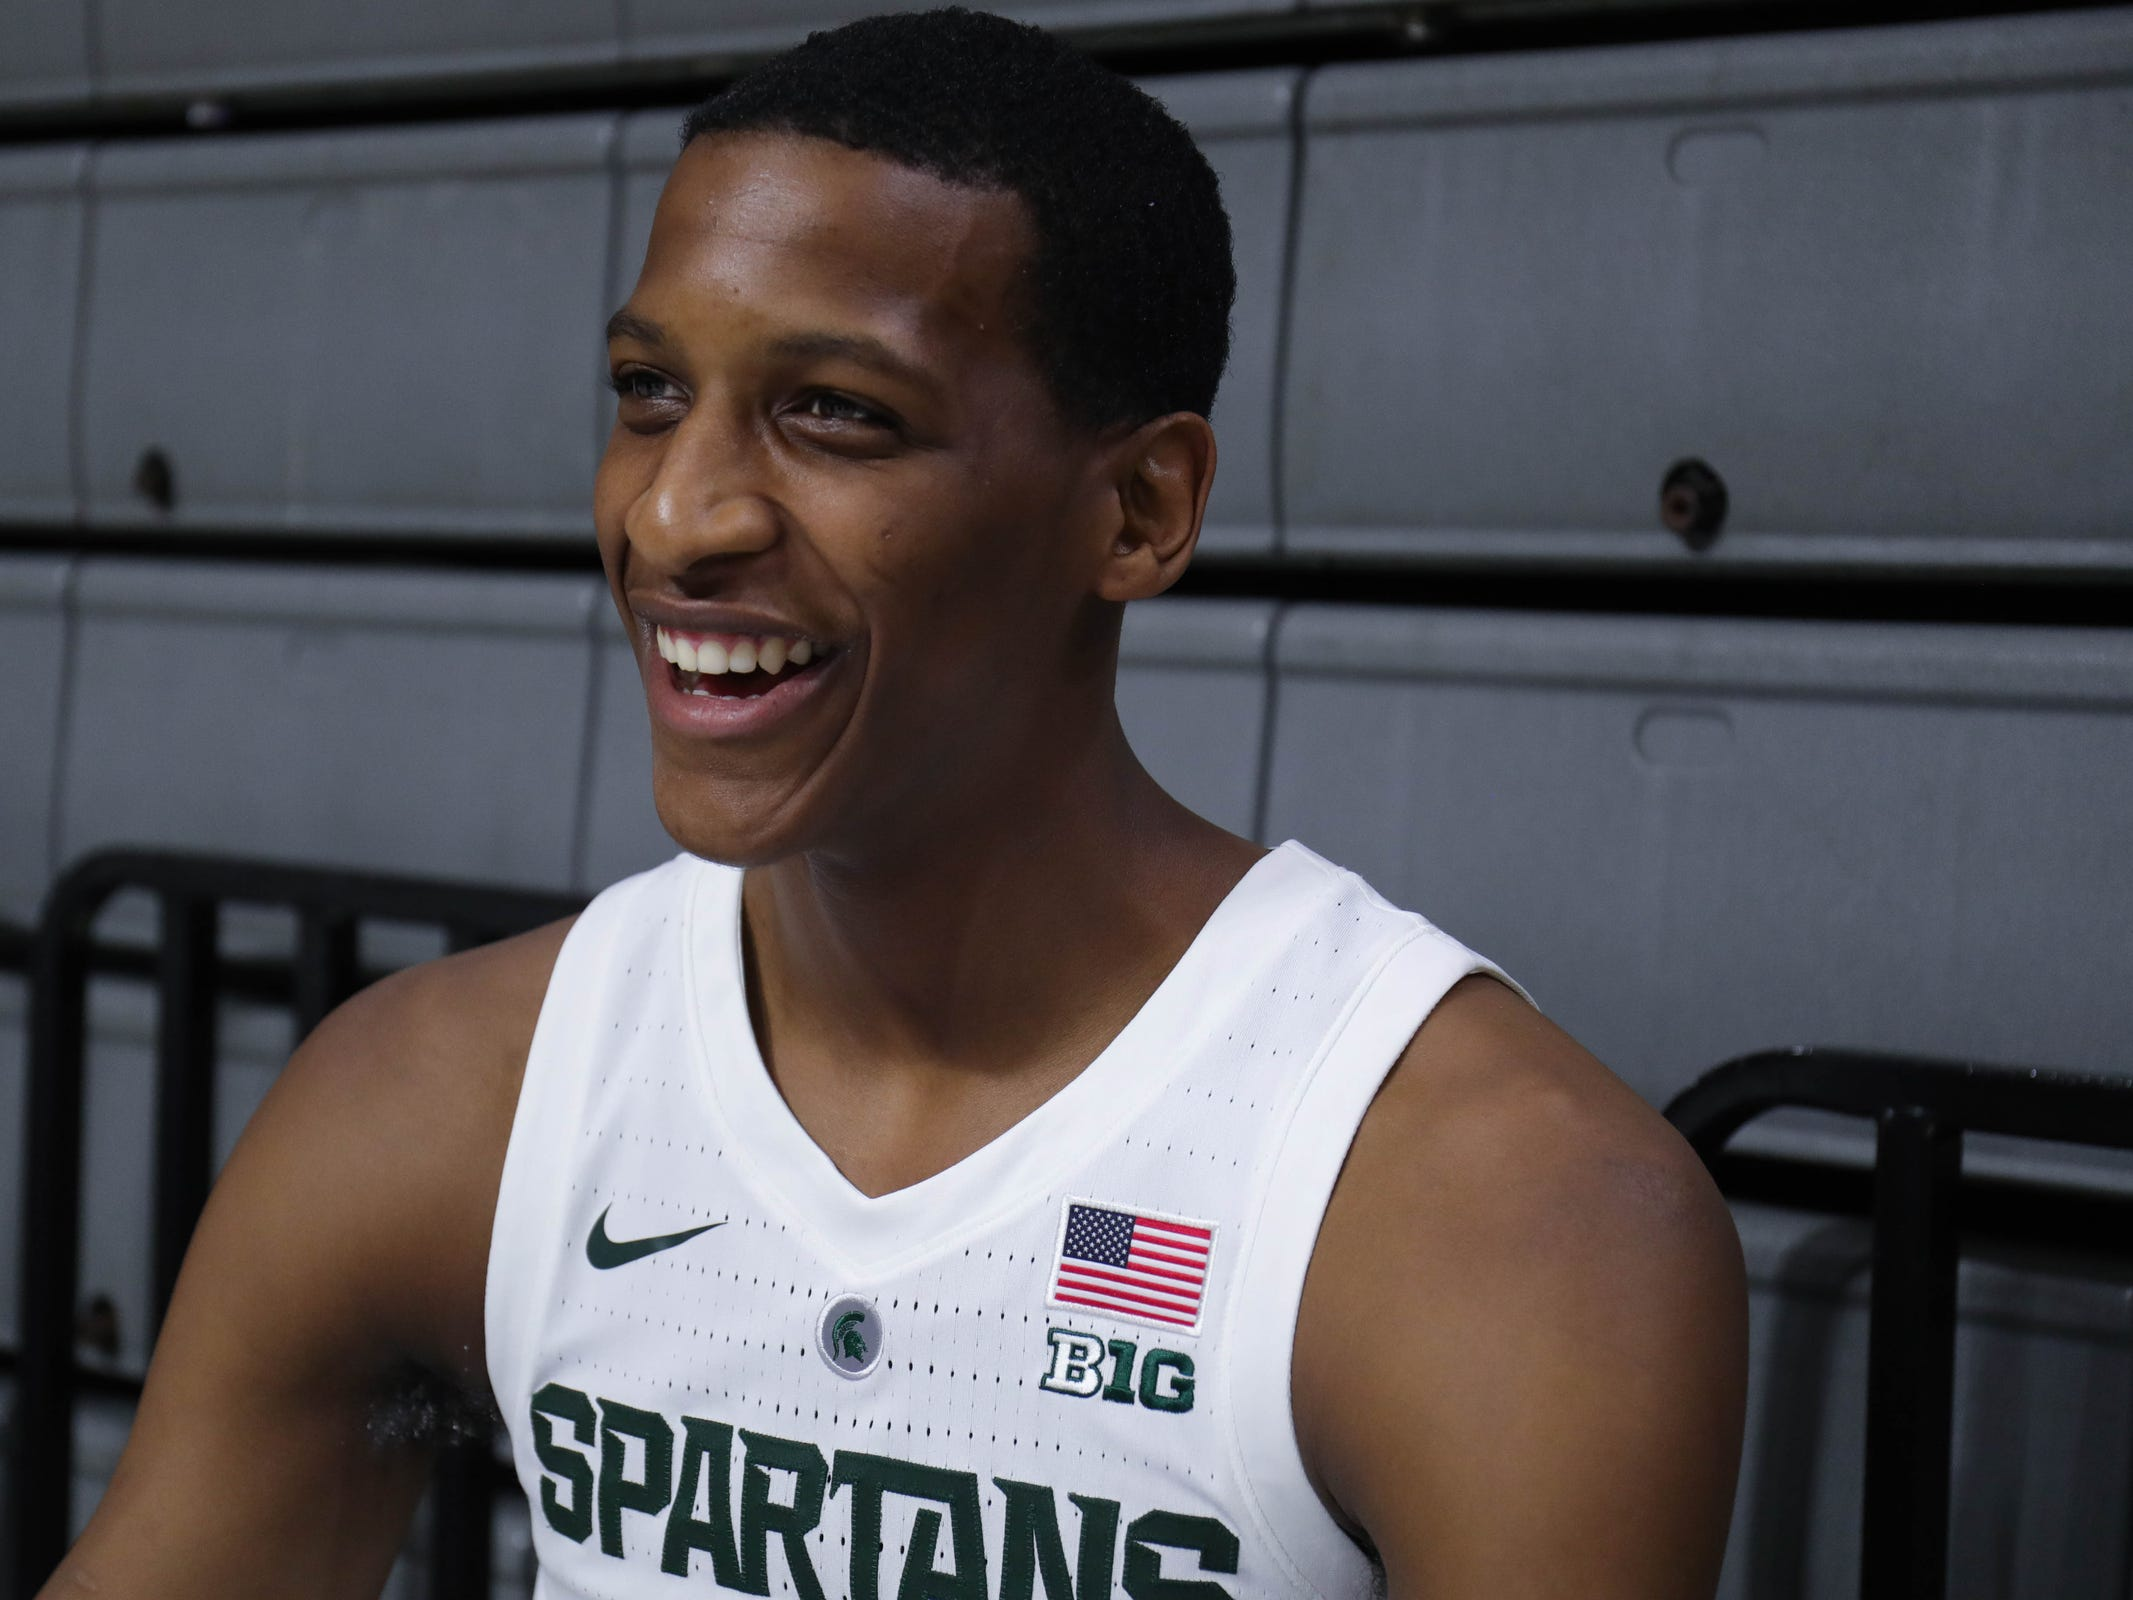 Michigan State forward Marcus Bingham Jr. talks with reporters at media day Thursday, Oct. 25, 2018 at Breslin Center in East Lansing.